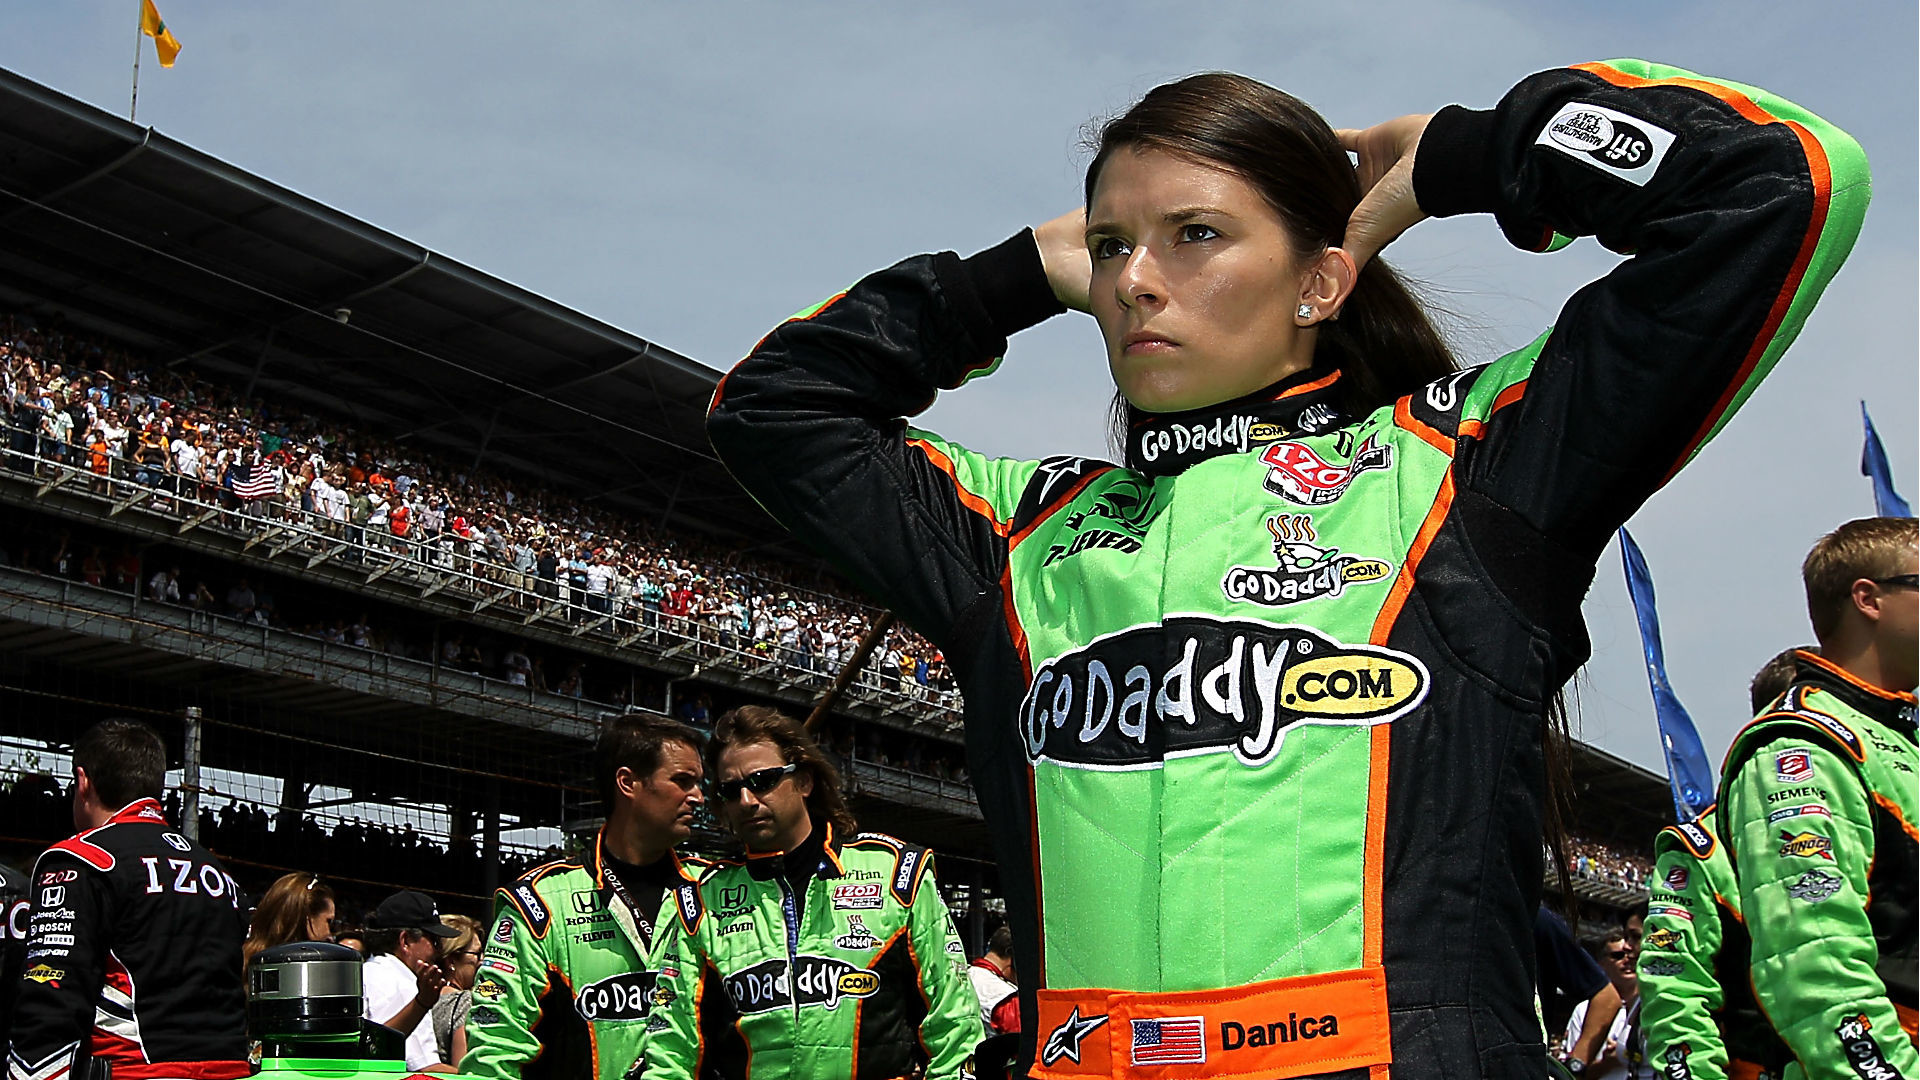 Danica Patrick's last Indy 500 start was in 2011. (Getty Images)